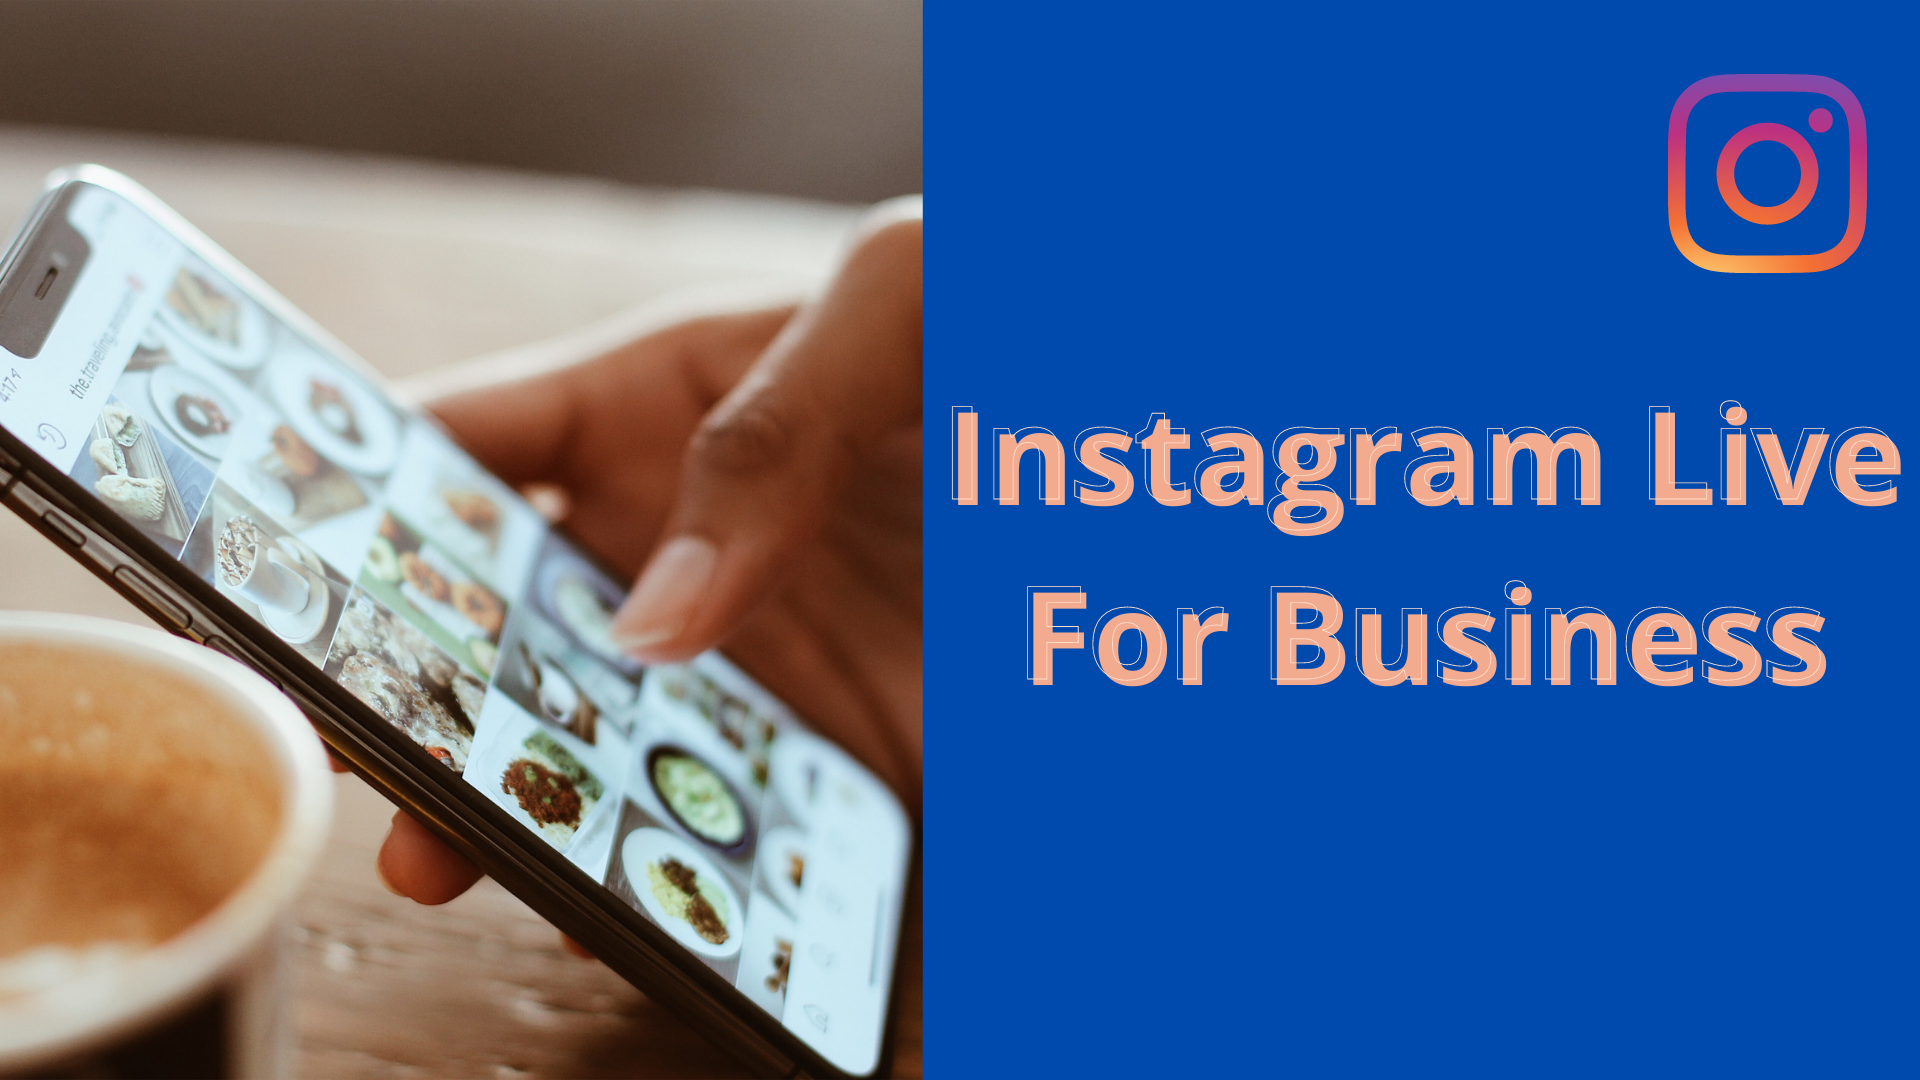 Instagram Live For Business: 7 Tips To Grow Your Brand Awareness